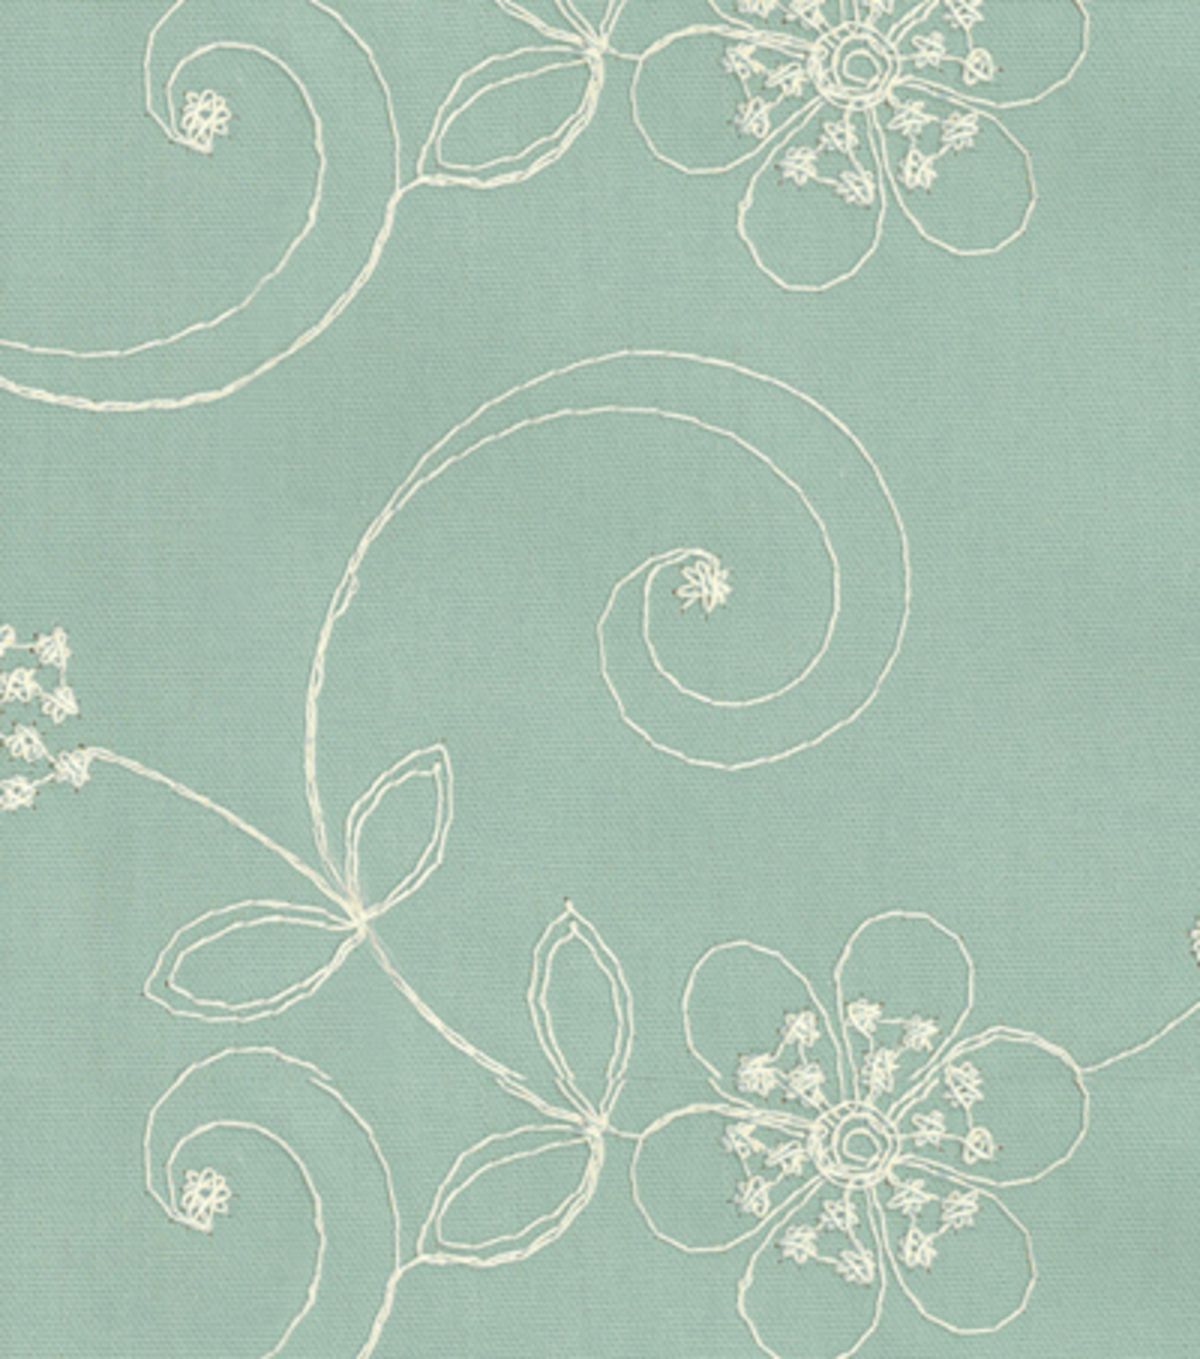 Home Decor 8\u0022x8\u0022 Fabric Swatch-Upholstery-Waverly Candlewicking Classic/Mist